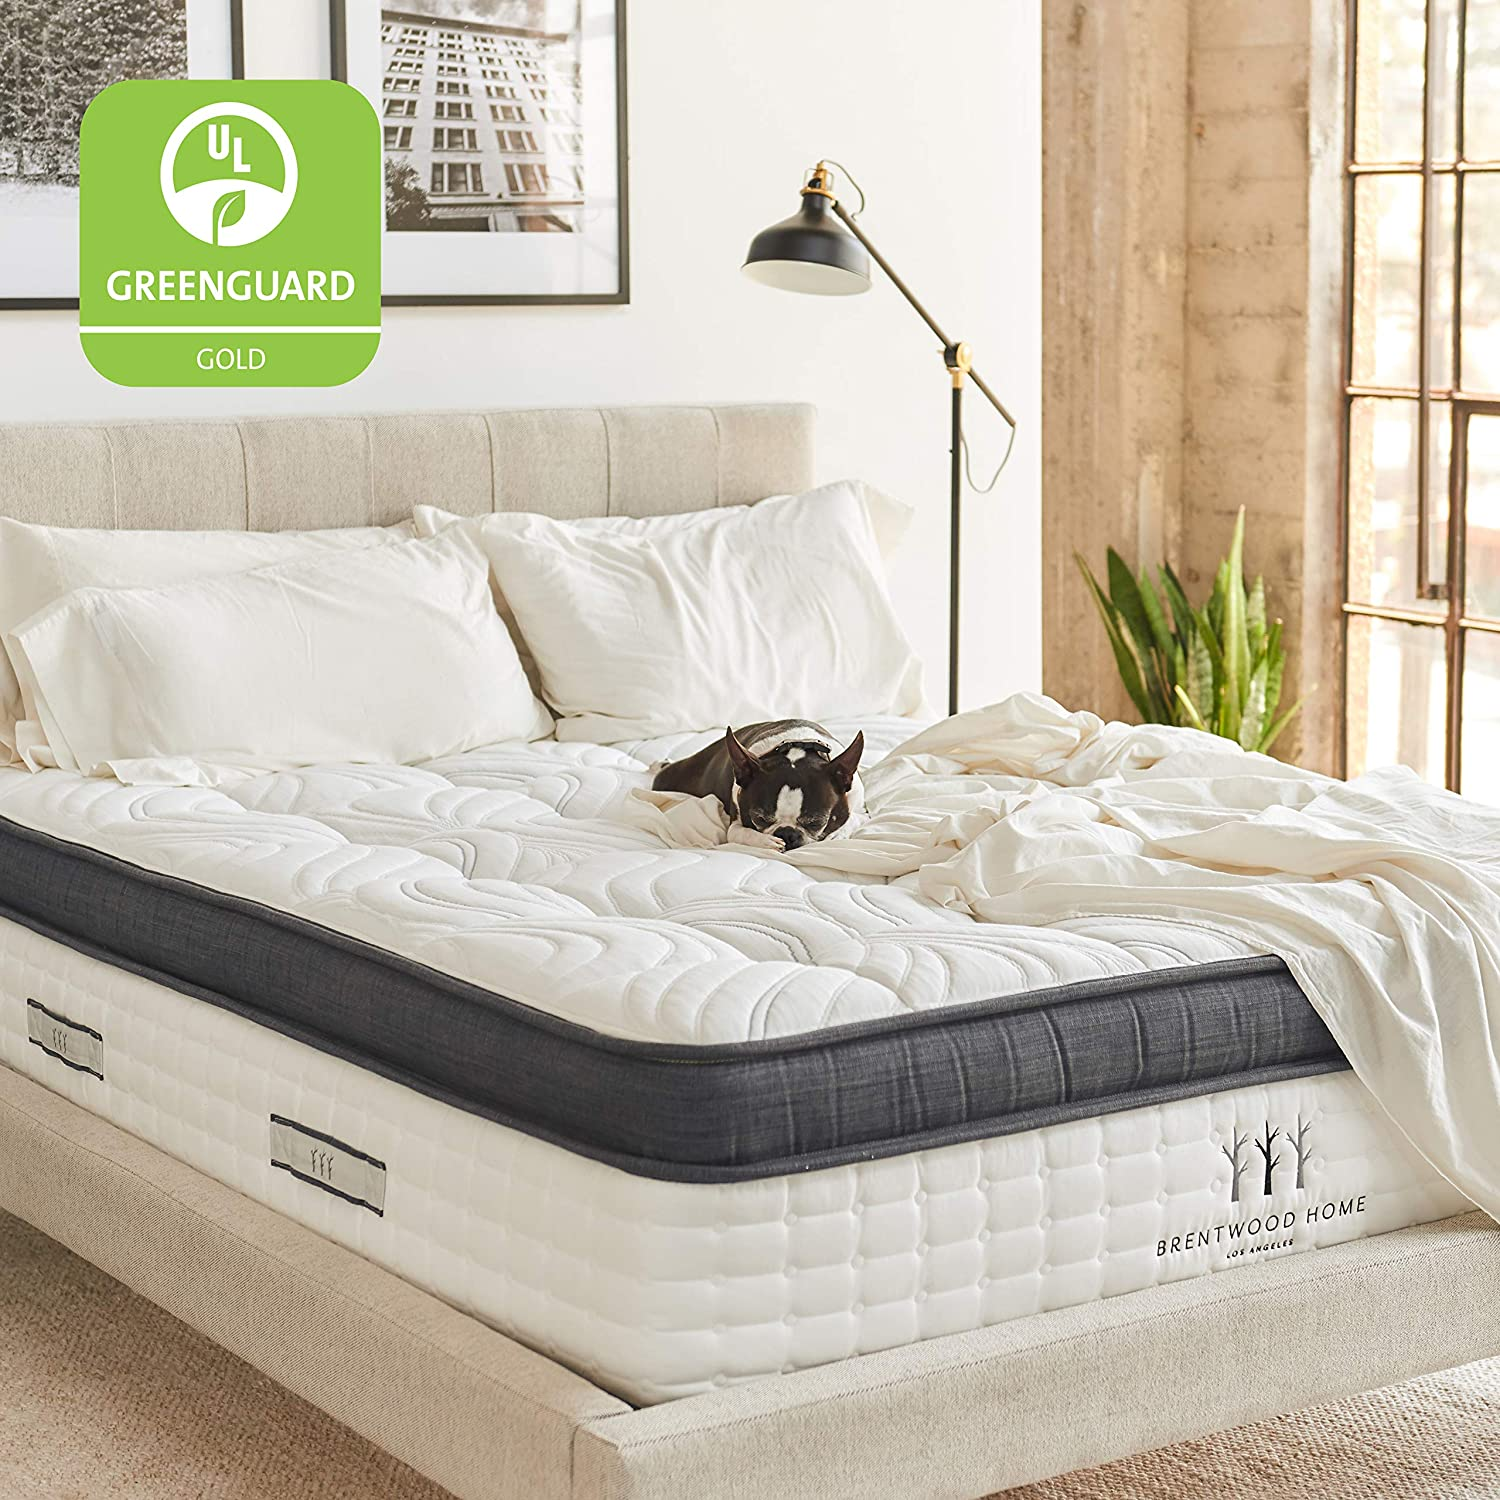 About California Queen Mattress Amazon.com: Brentwood Home Oceano Wrapped Innerspring Mattress, Made in  California, Queen: Kitchen u0026 Dining